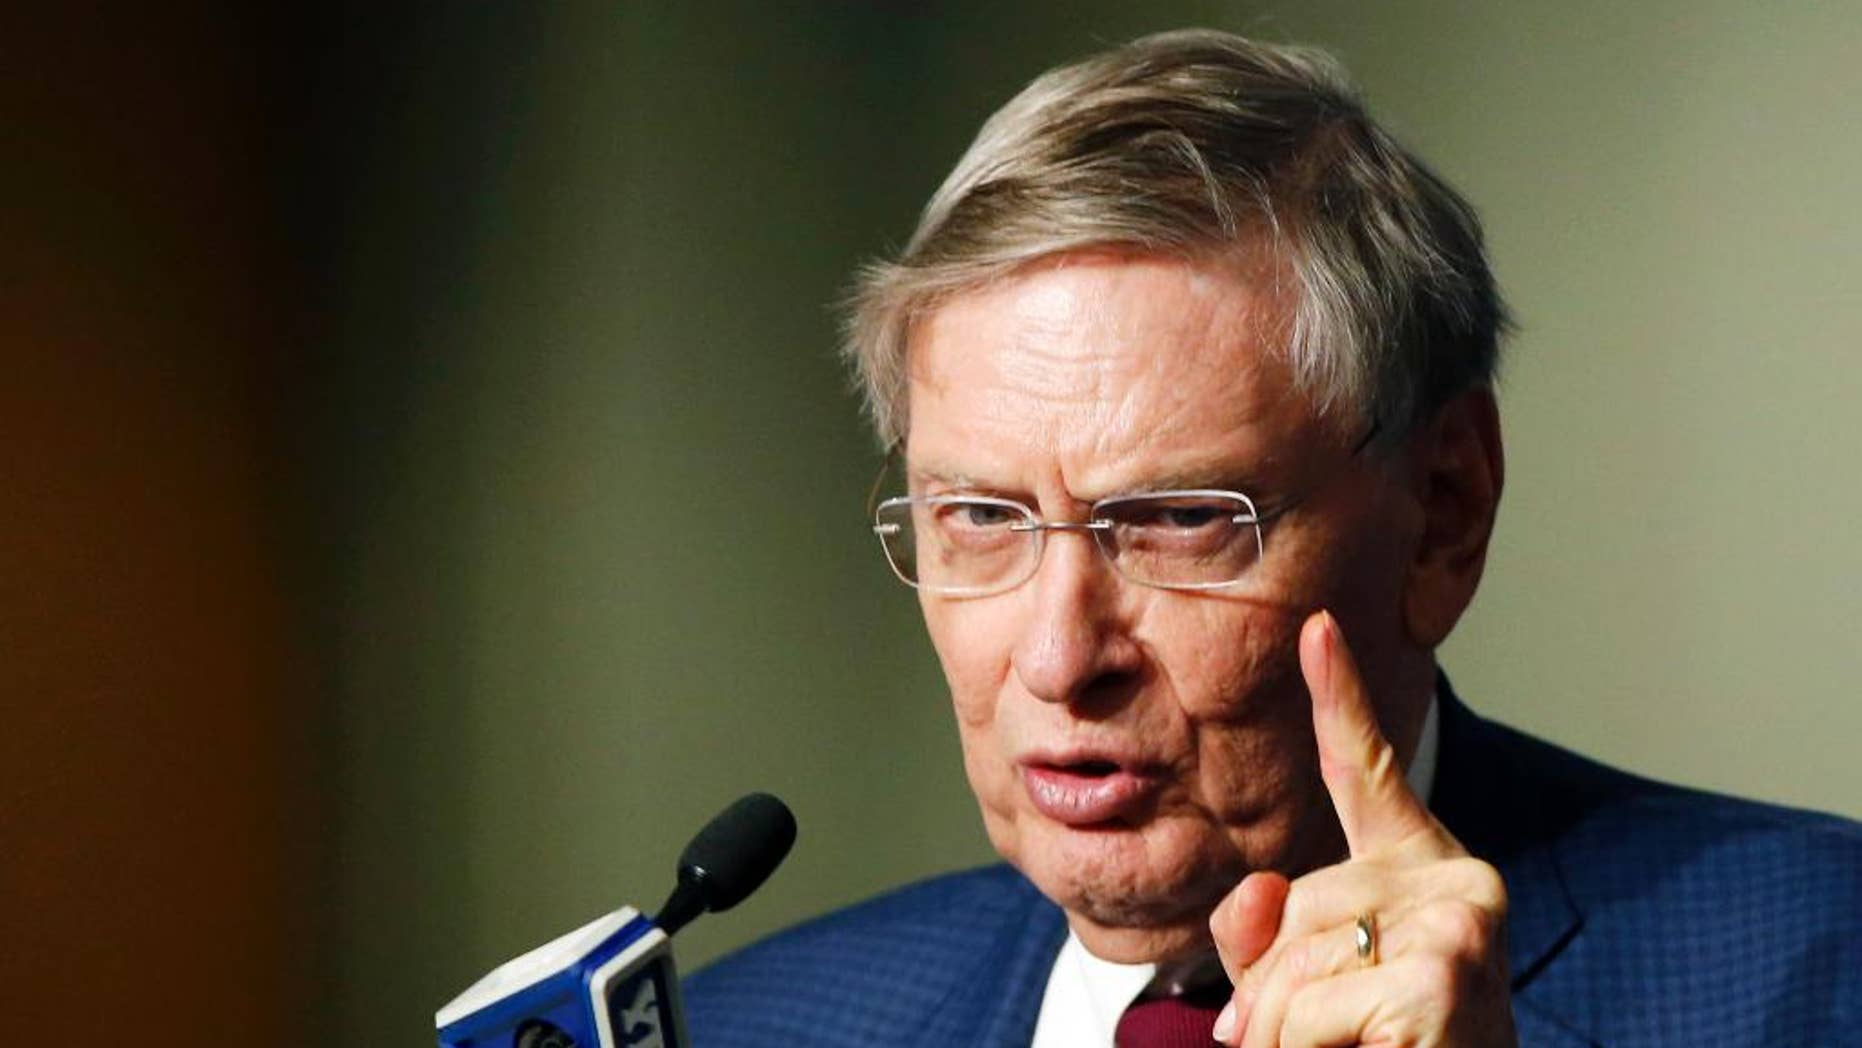 Major League Baseball Commissioner Bud Selig speaks to the media before a baseball game between the New York Yankees and the Baltimore Orioles at Yankee Stadium in New York, Tuesday, Sept. 23, 2014. (AP Photo/Kathy Willens)